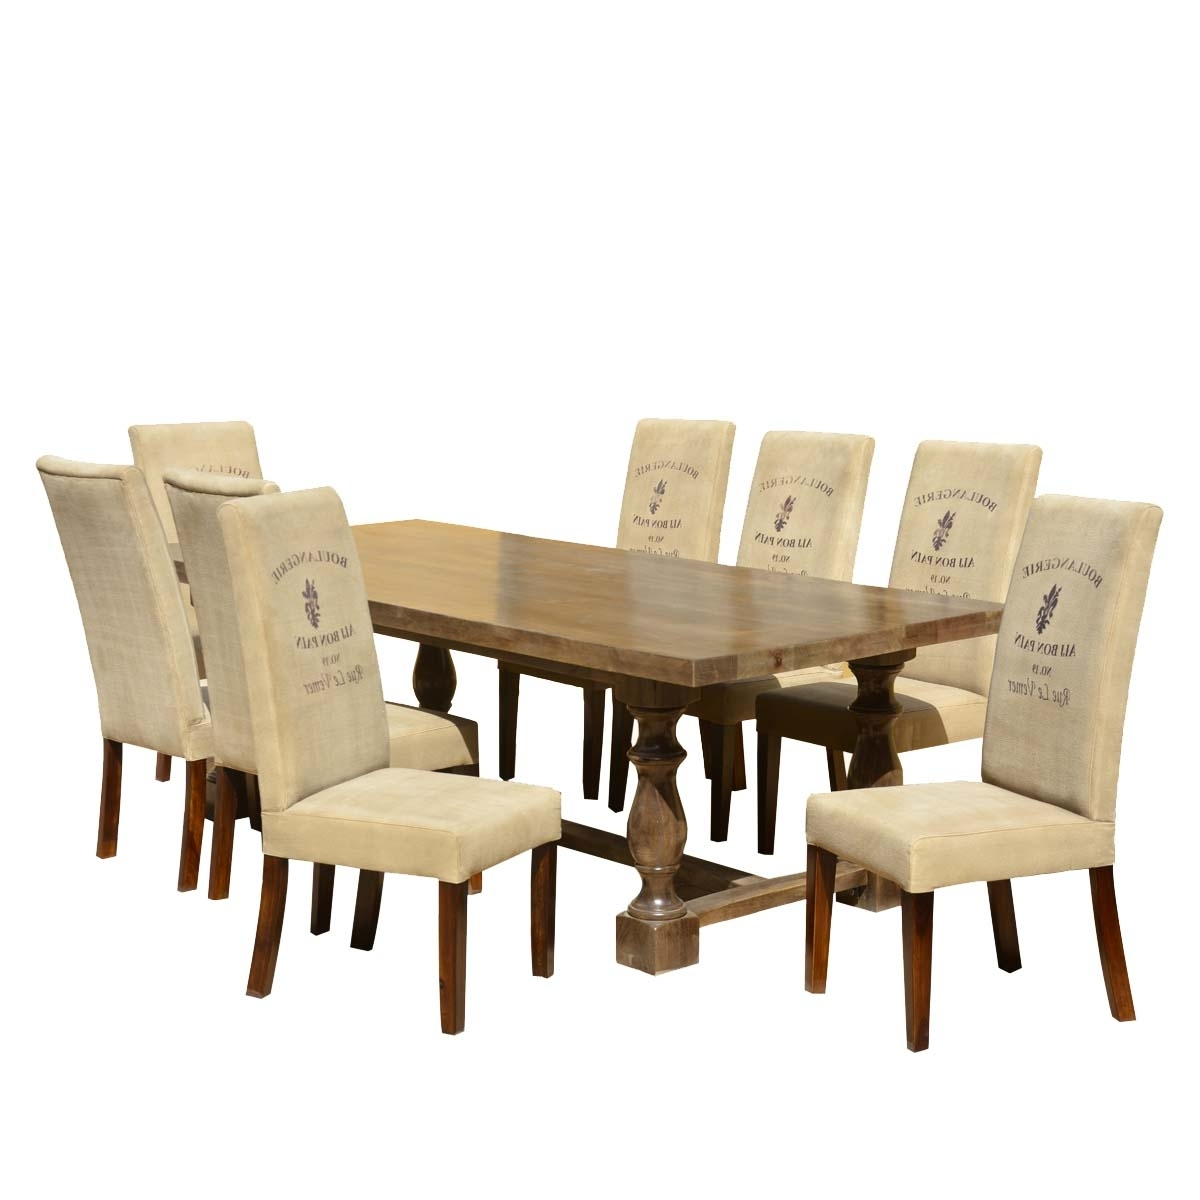 Favorite Dining Tables And Fabric Chairs Intended For Cafe Logo Mango Dining Table Set With Fabric Upholstered Chairs (View 12 of 25)